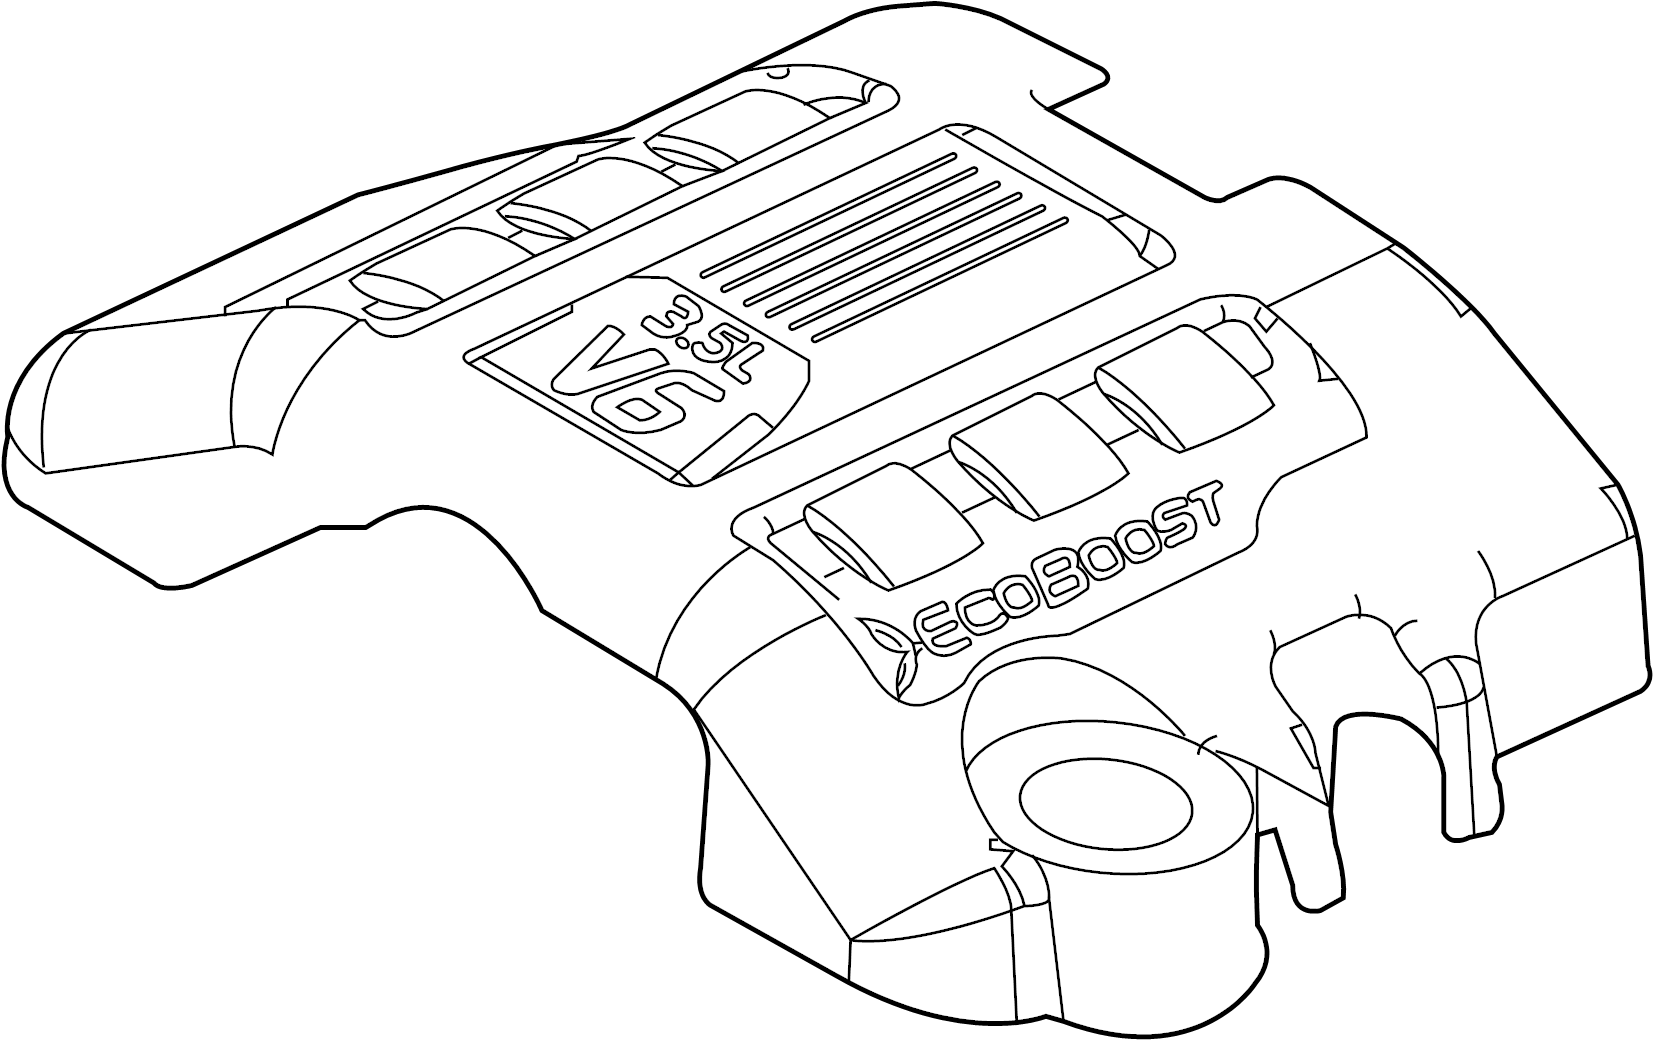 2013 taurus v6 engine diagram